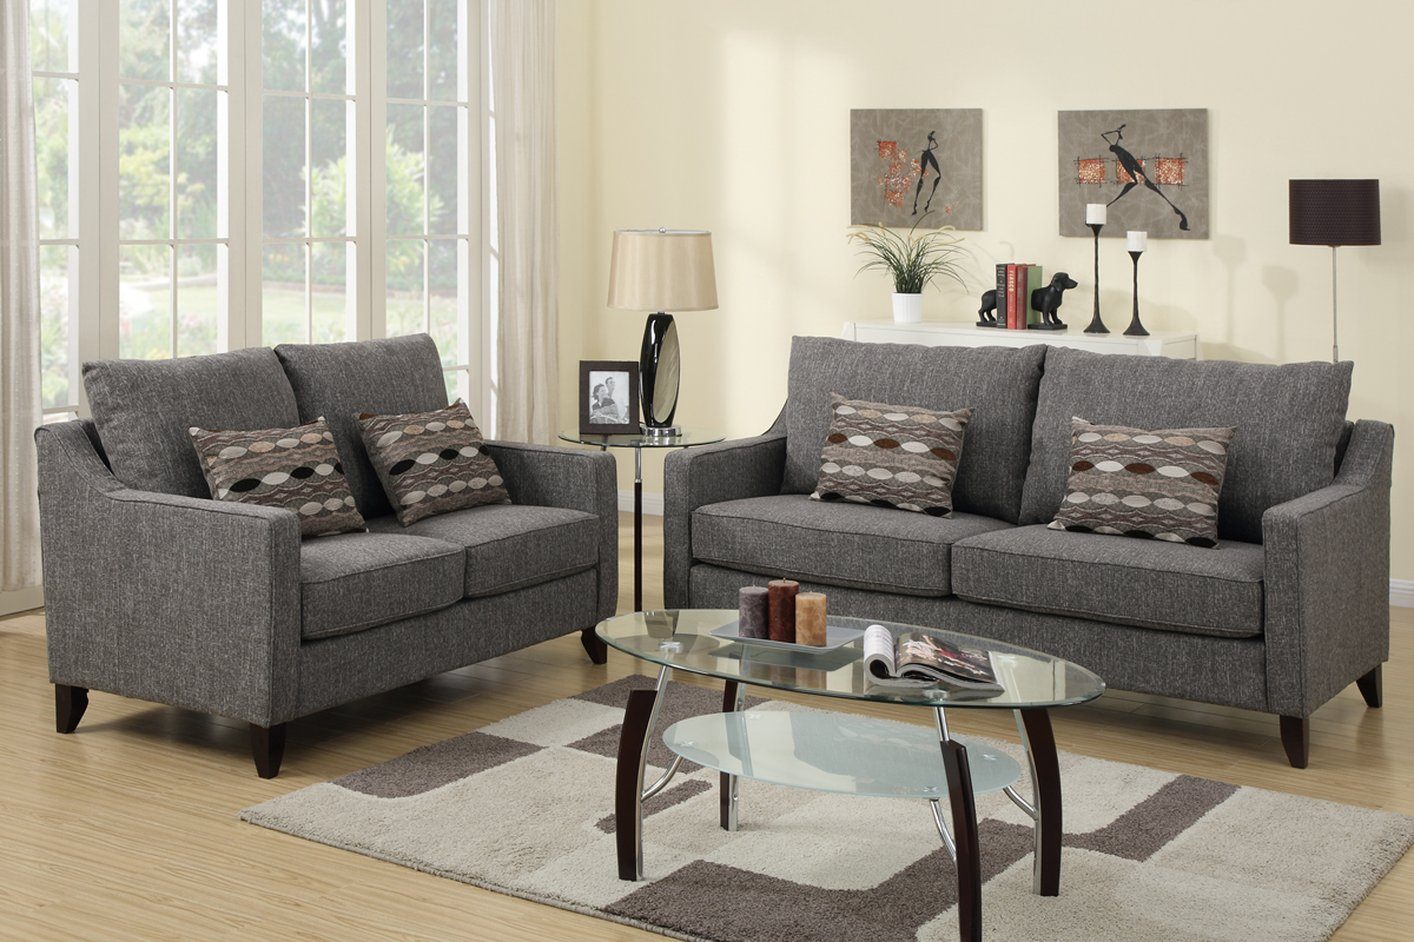 Poundex Avery F7544 Grey Fabric Sofa And Loveseat Set Steal A Sofa Furniture Outlet Los Angeles Ca